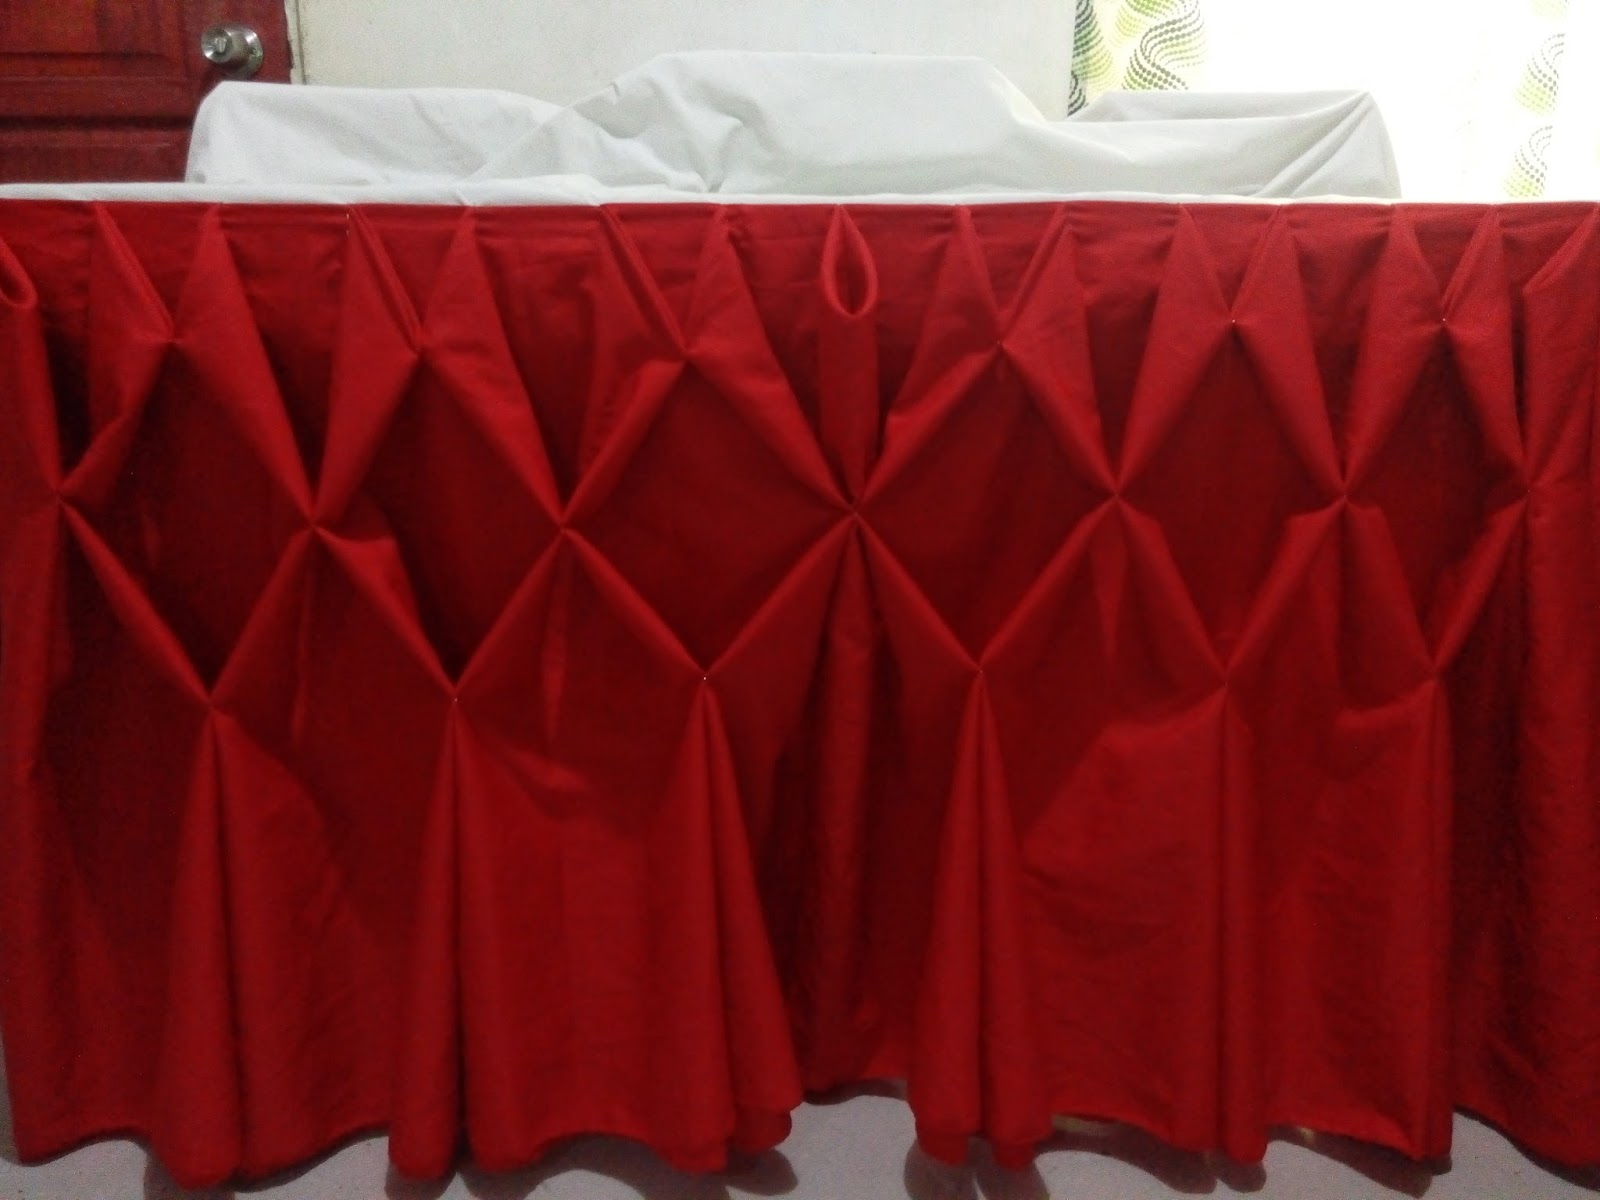 Continue Pinning 2 Pleats Together Until You Achieve The Desired Diamond Table  Skirting.